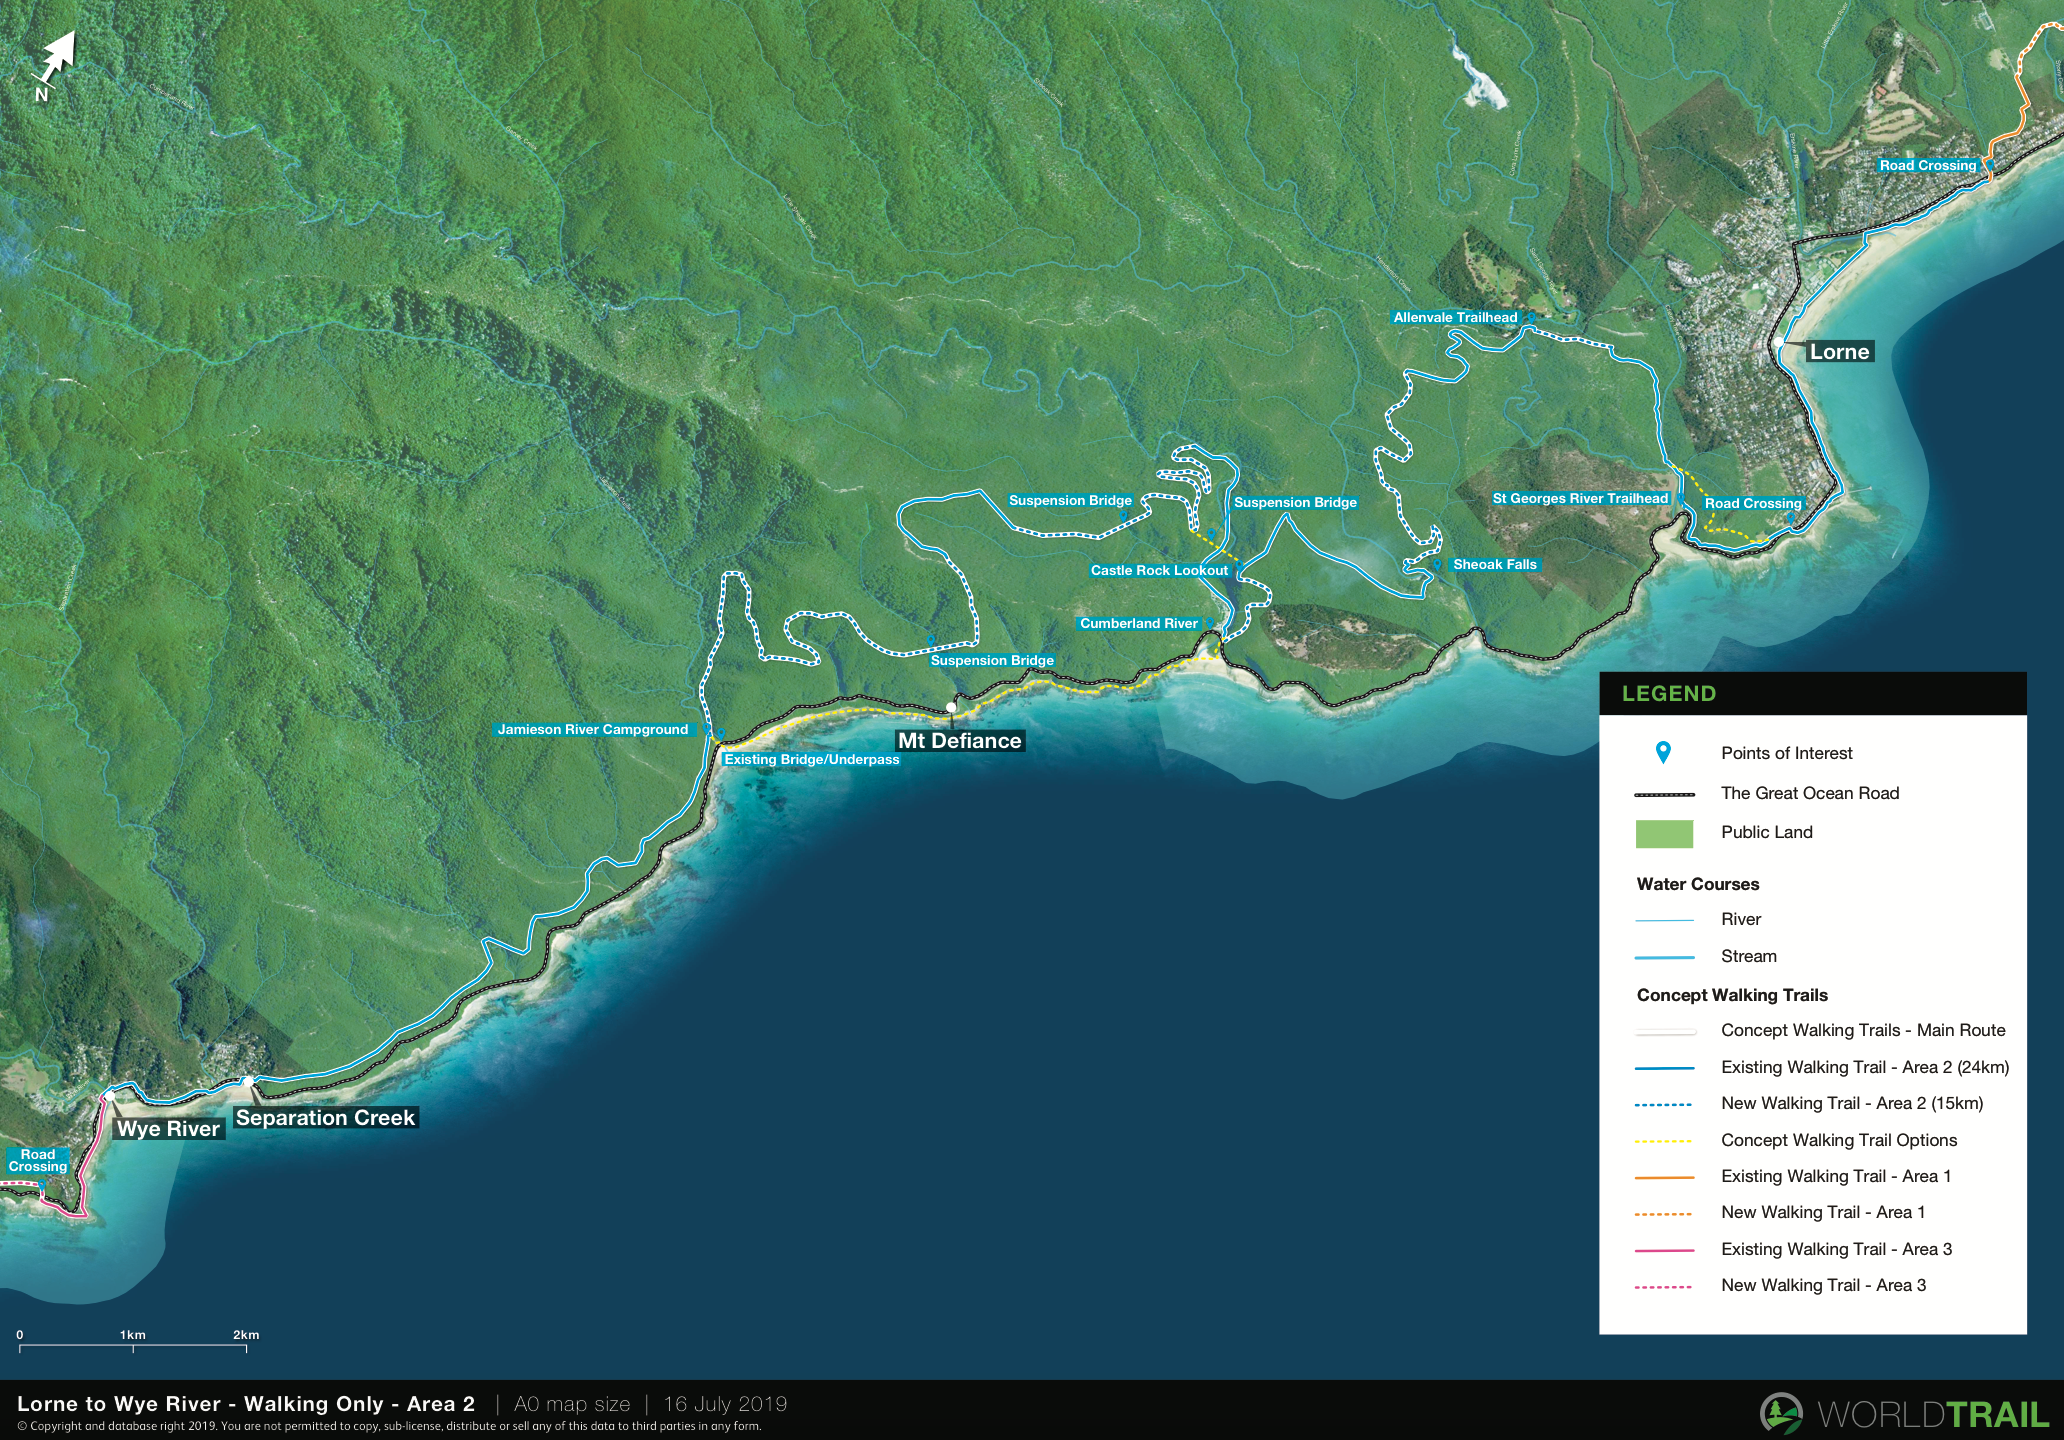 Draft concept map for a walking trail starting in Lorne and finishing in Wye River in the Great Ocean Road region